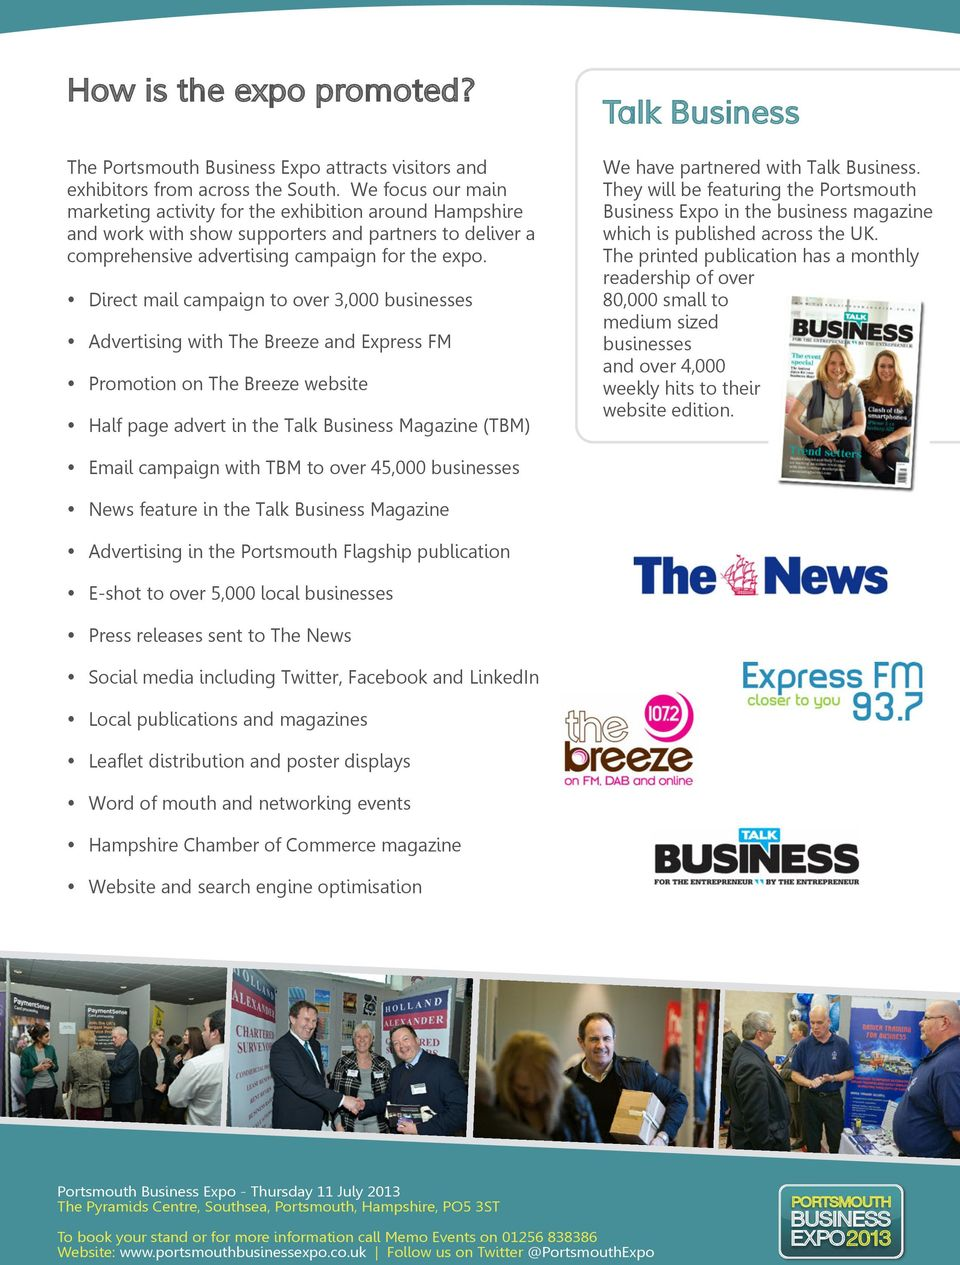 Direct mail campaign to over 3,000 businesses Advertising with The Breeze and Express FM Promotion on The Breeze website Half page advert in the Talk Business Magazine (TBM) Talk Business We have